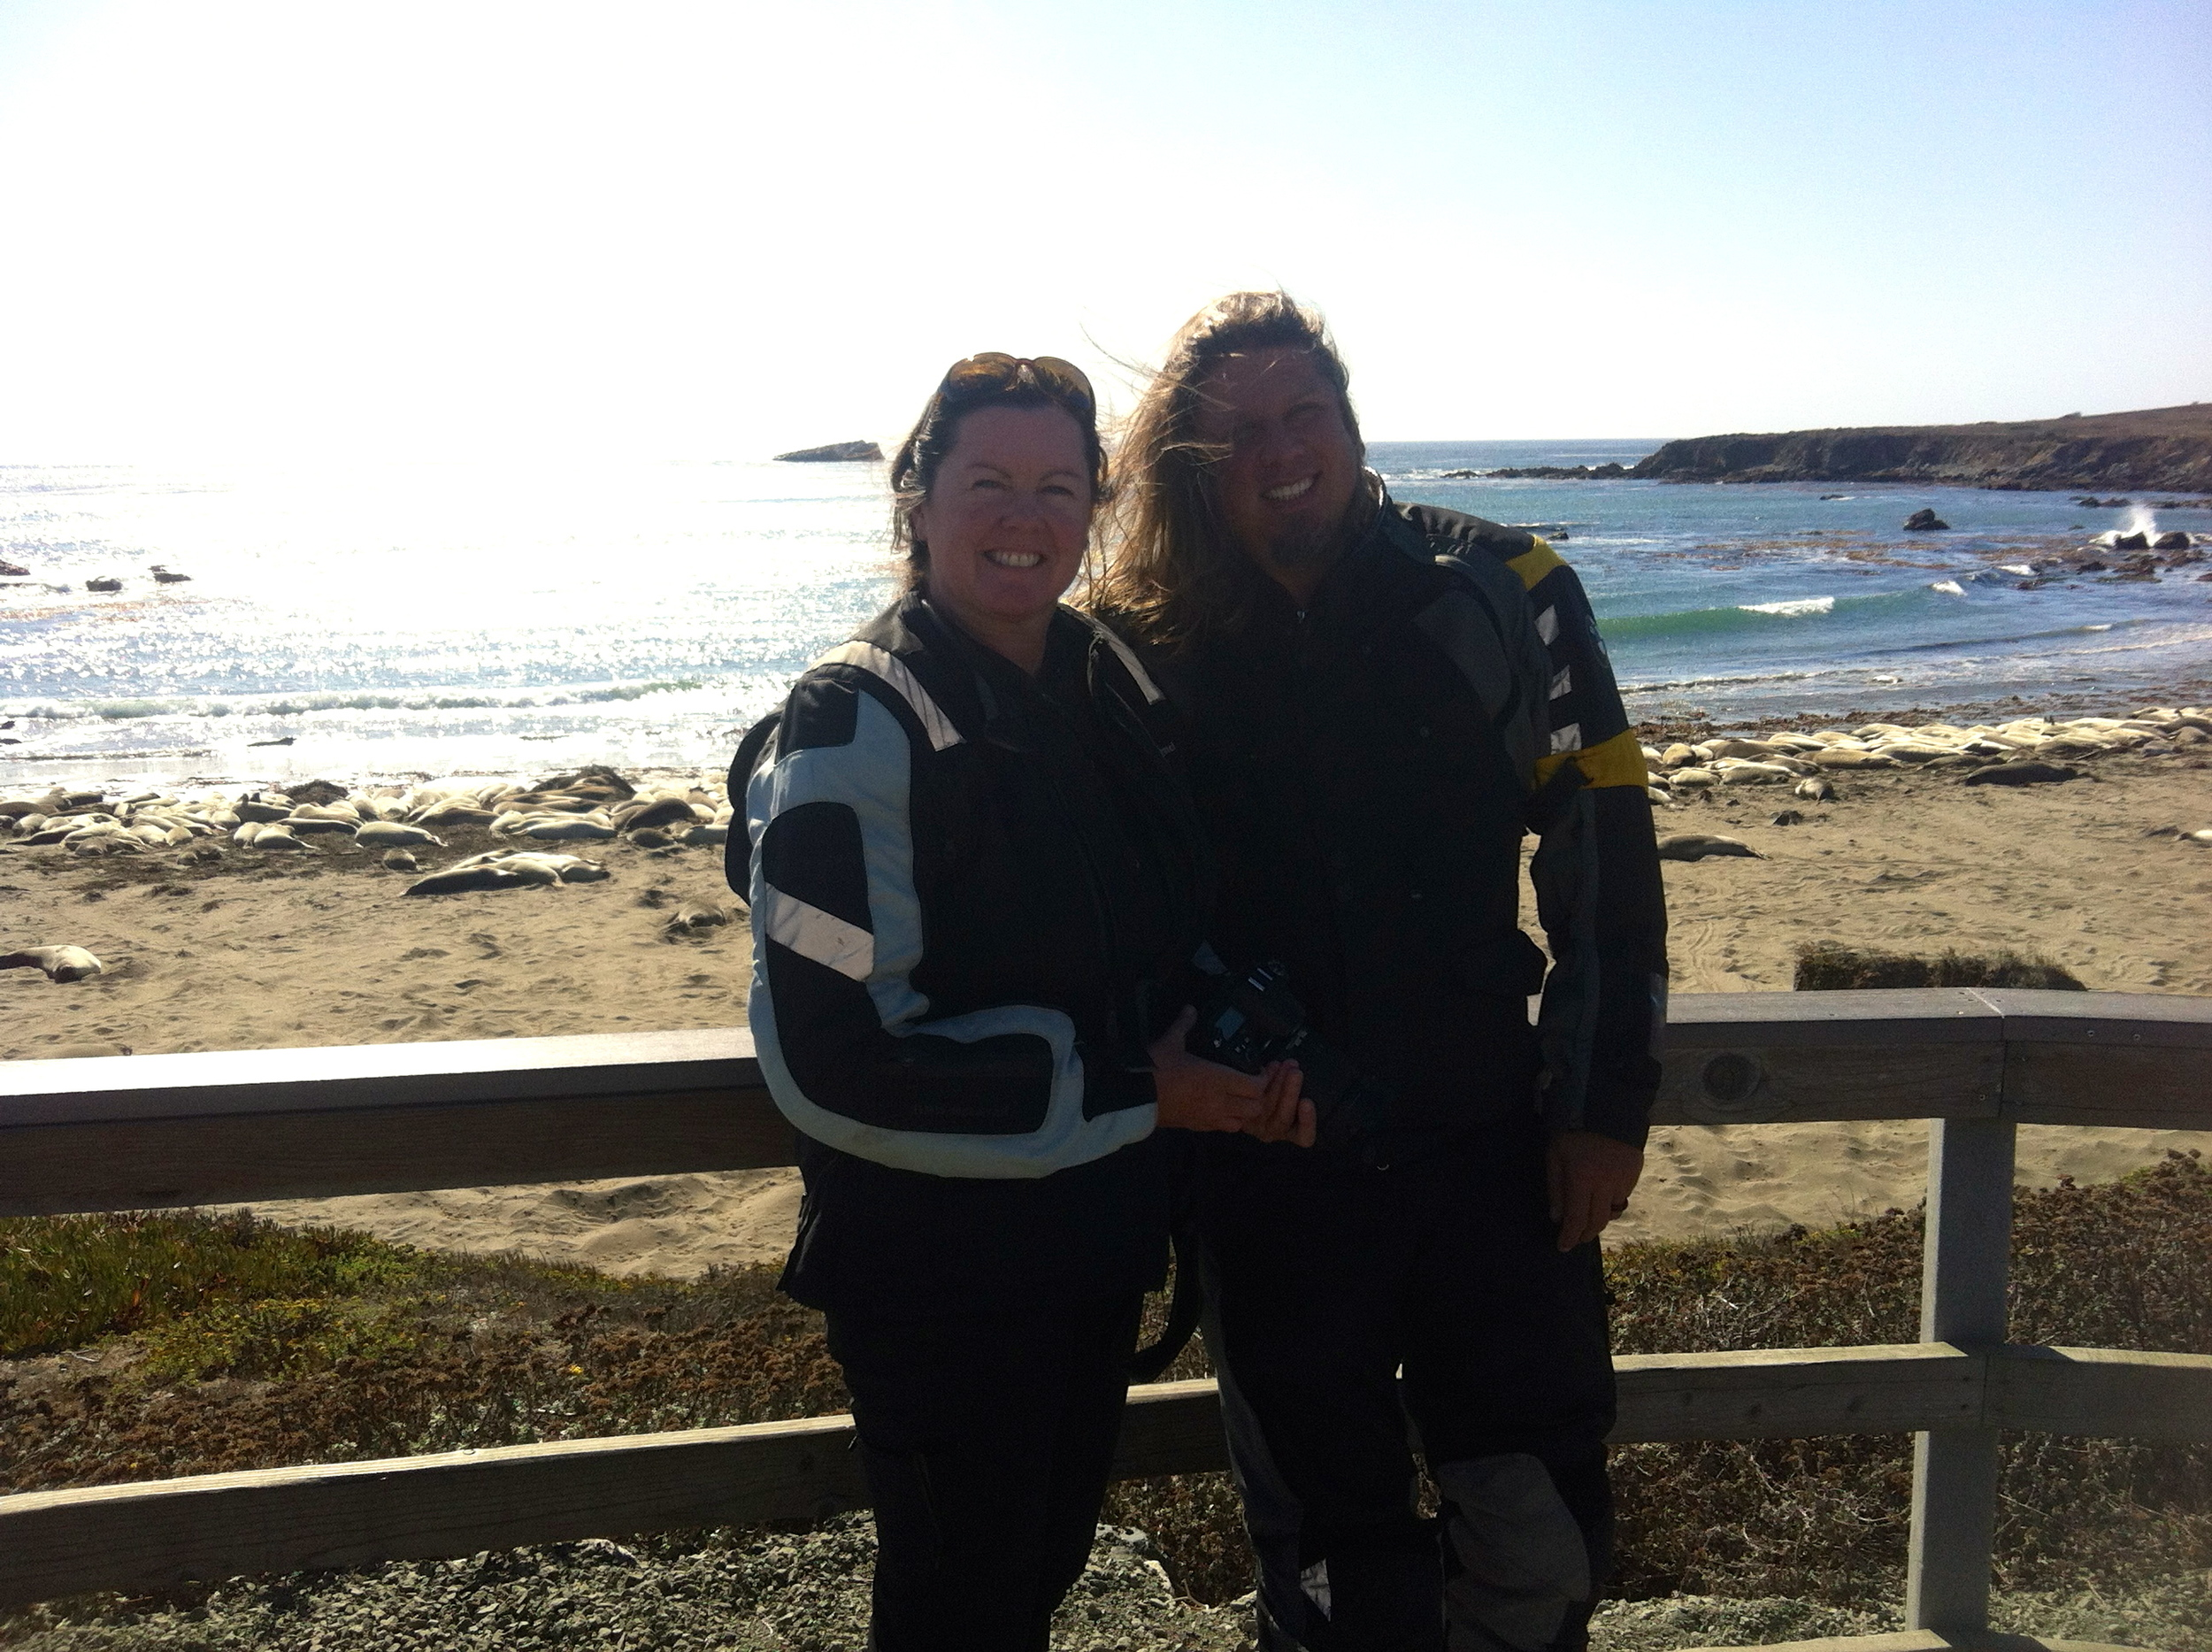 Stopping at the Elephant Seals on our way south to Morro Bay, California